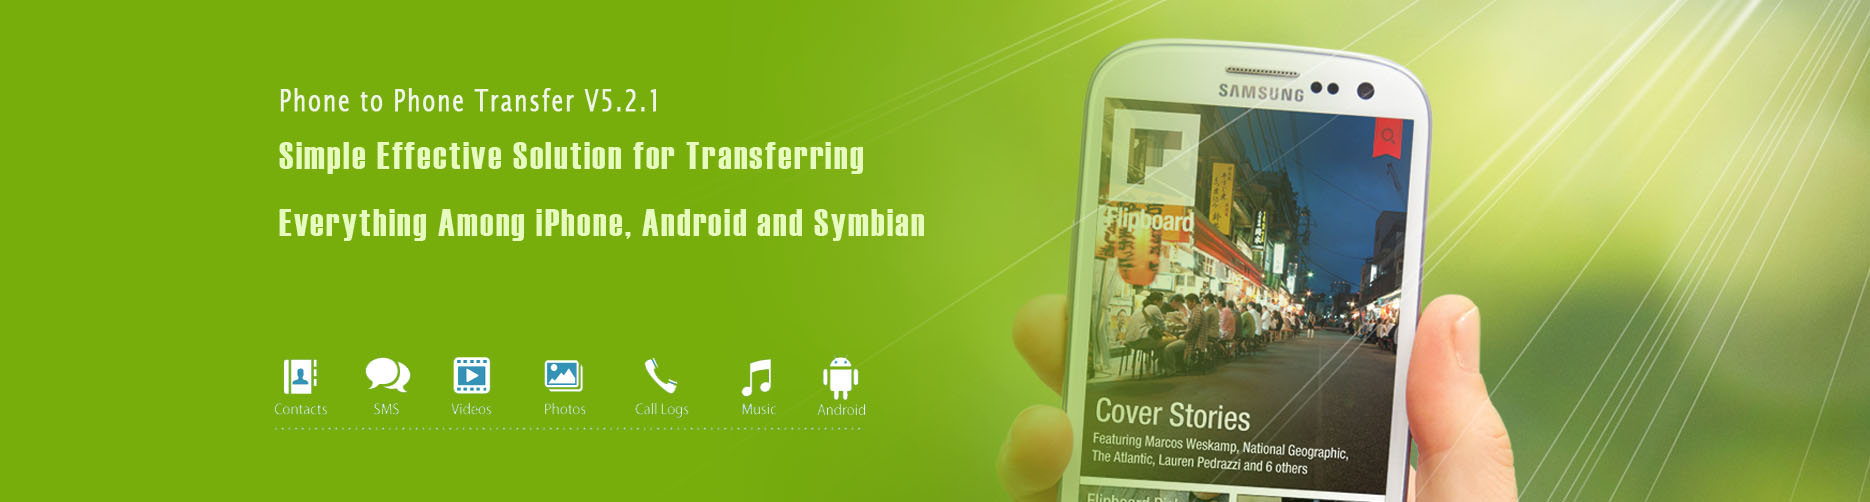 Androidphonesoft - Discover and Share the Most Useful Program for